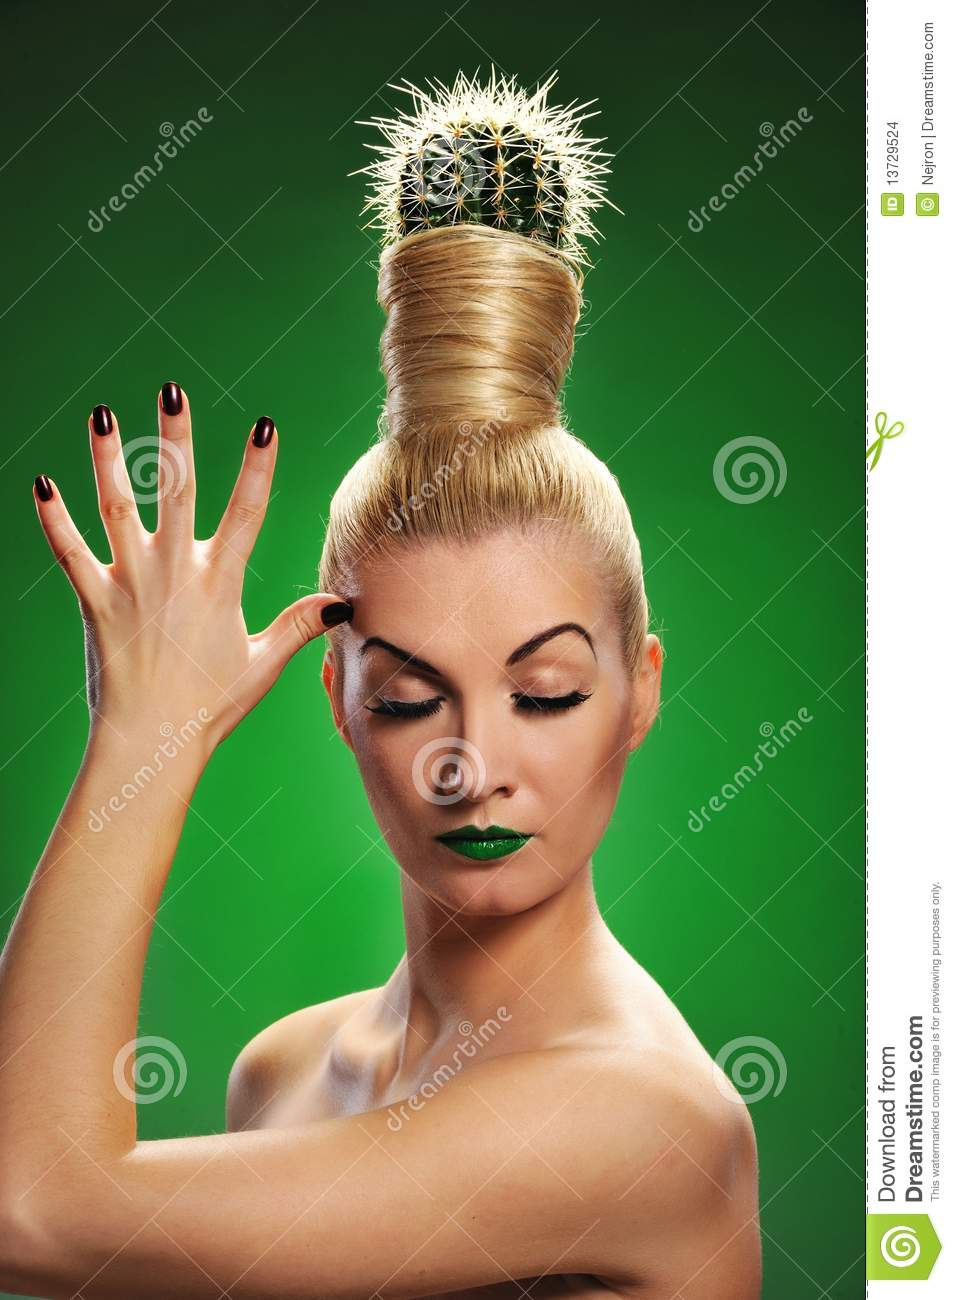 woman with cactus in her hair stock images image 13729524. Black Bedroom Furniture Sets. Home Design Ideas